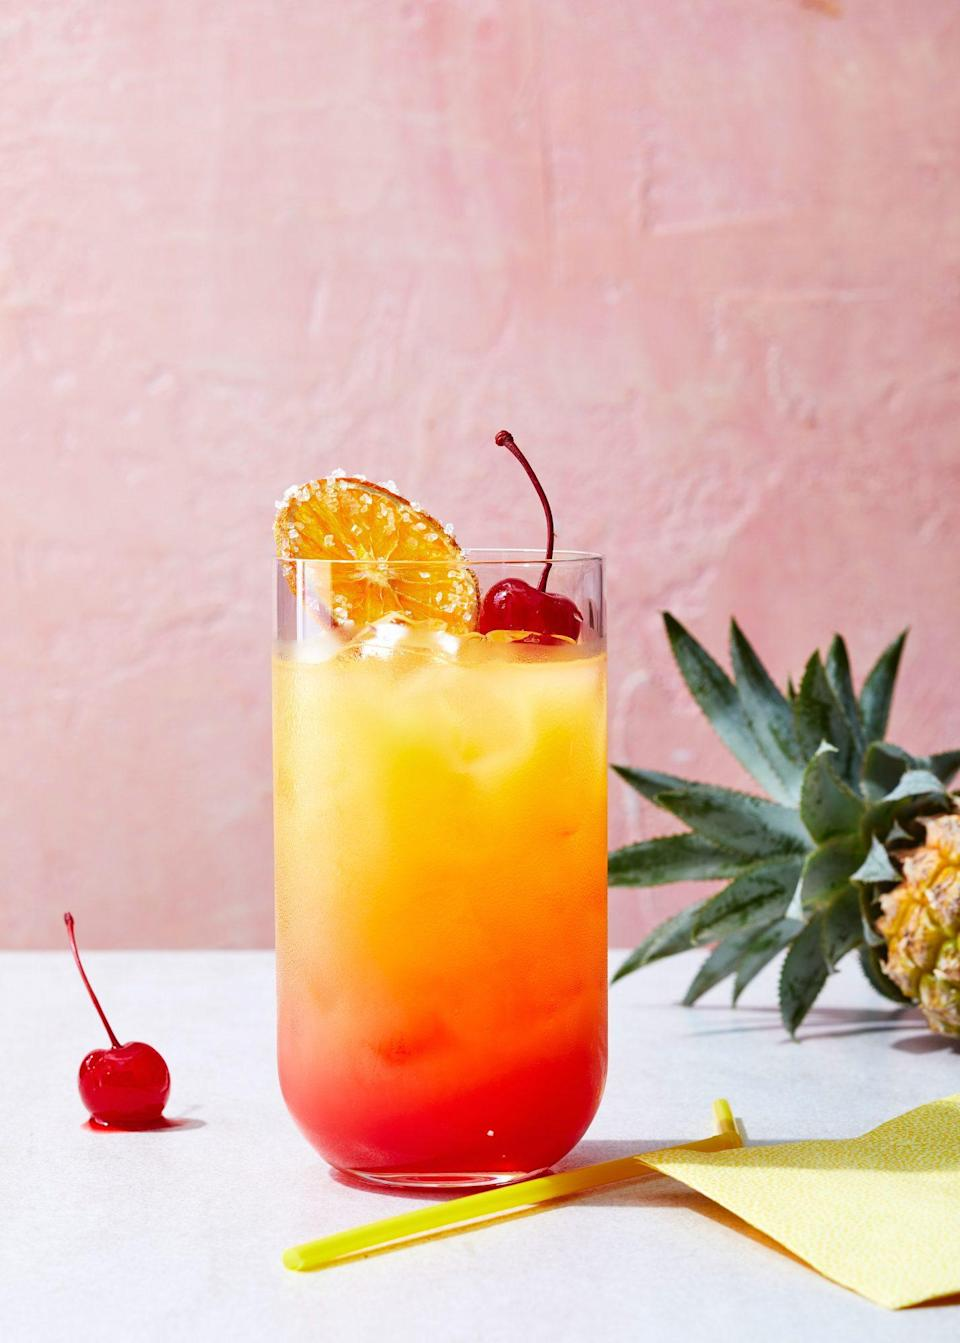 "<p><strong>Recipe: </strong><a href=""https://www.southernliving.com/recipes/southern-sunrise-cocktail"" rel=""nofollow noopener"" target=""_blank"" data-ylk=""slk:Southern Sunrise"" class=""link rapid-noclick-resp""><strong>Southern Sunrise</strong></a></p> <p>It's no secret that this year has inspired more cocktail drinking than most, so we weren't surprised to see that this summery, big-batch drink was popular amongst readers. You need just a few ingredients to make it yourself.</p>"